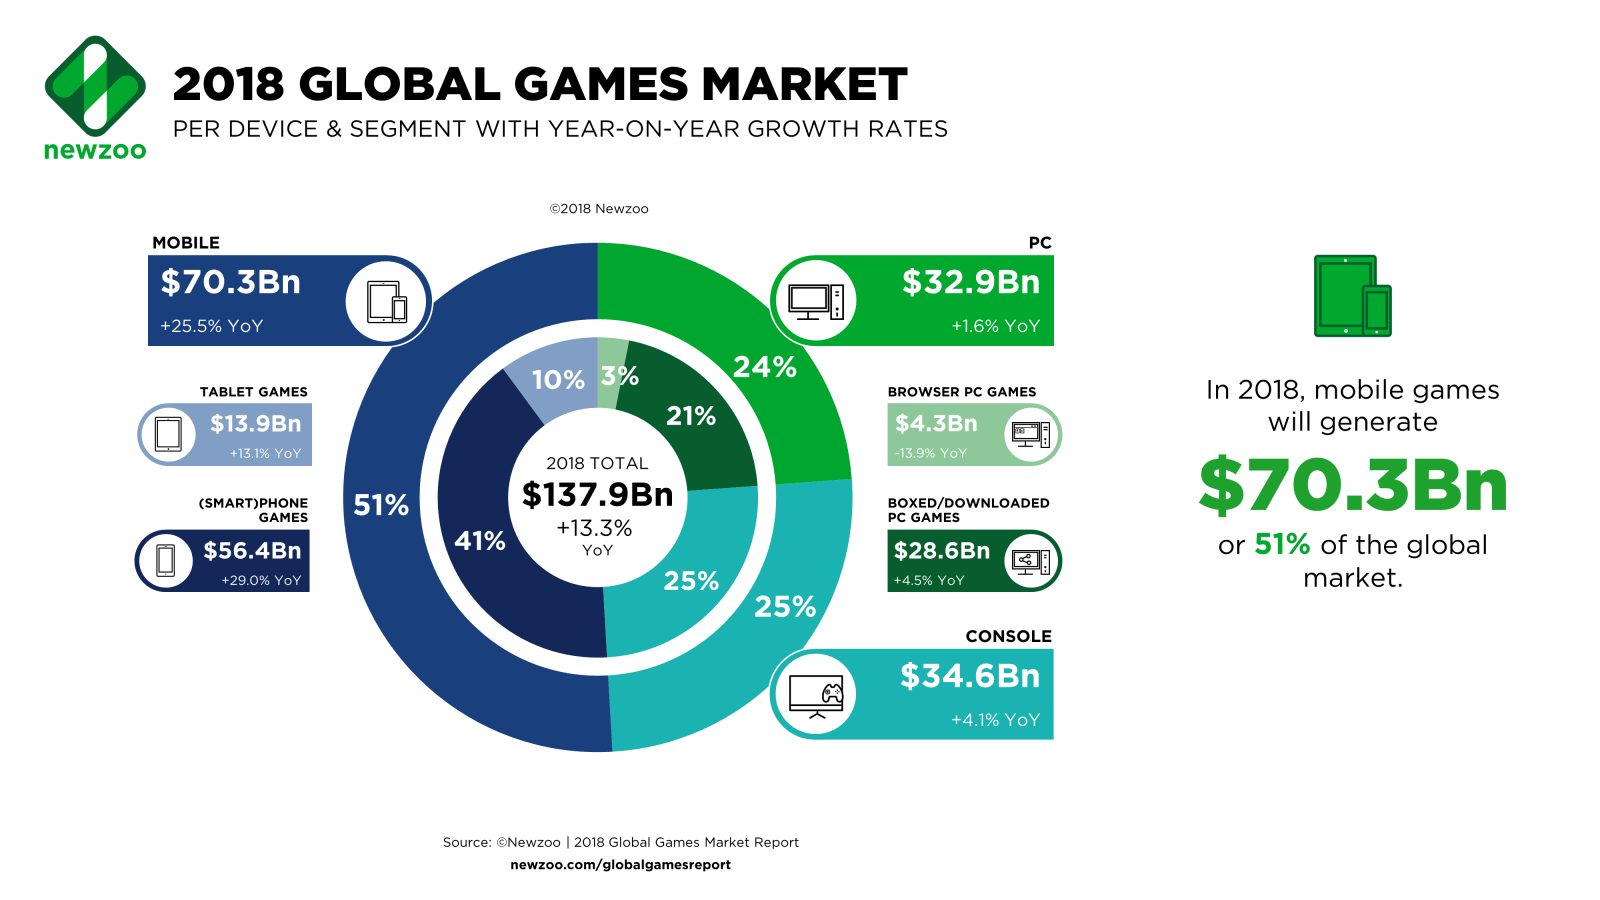 2018 Global Games Market